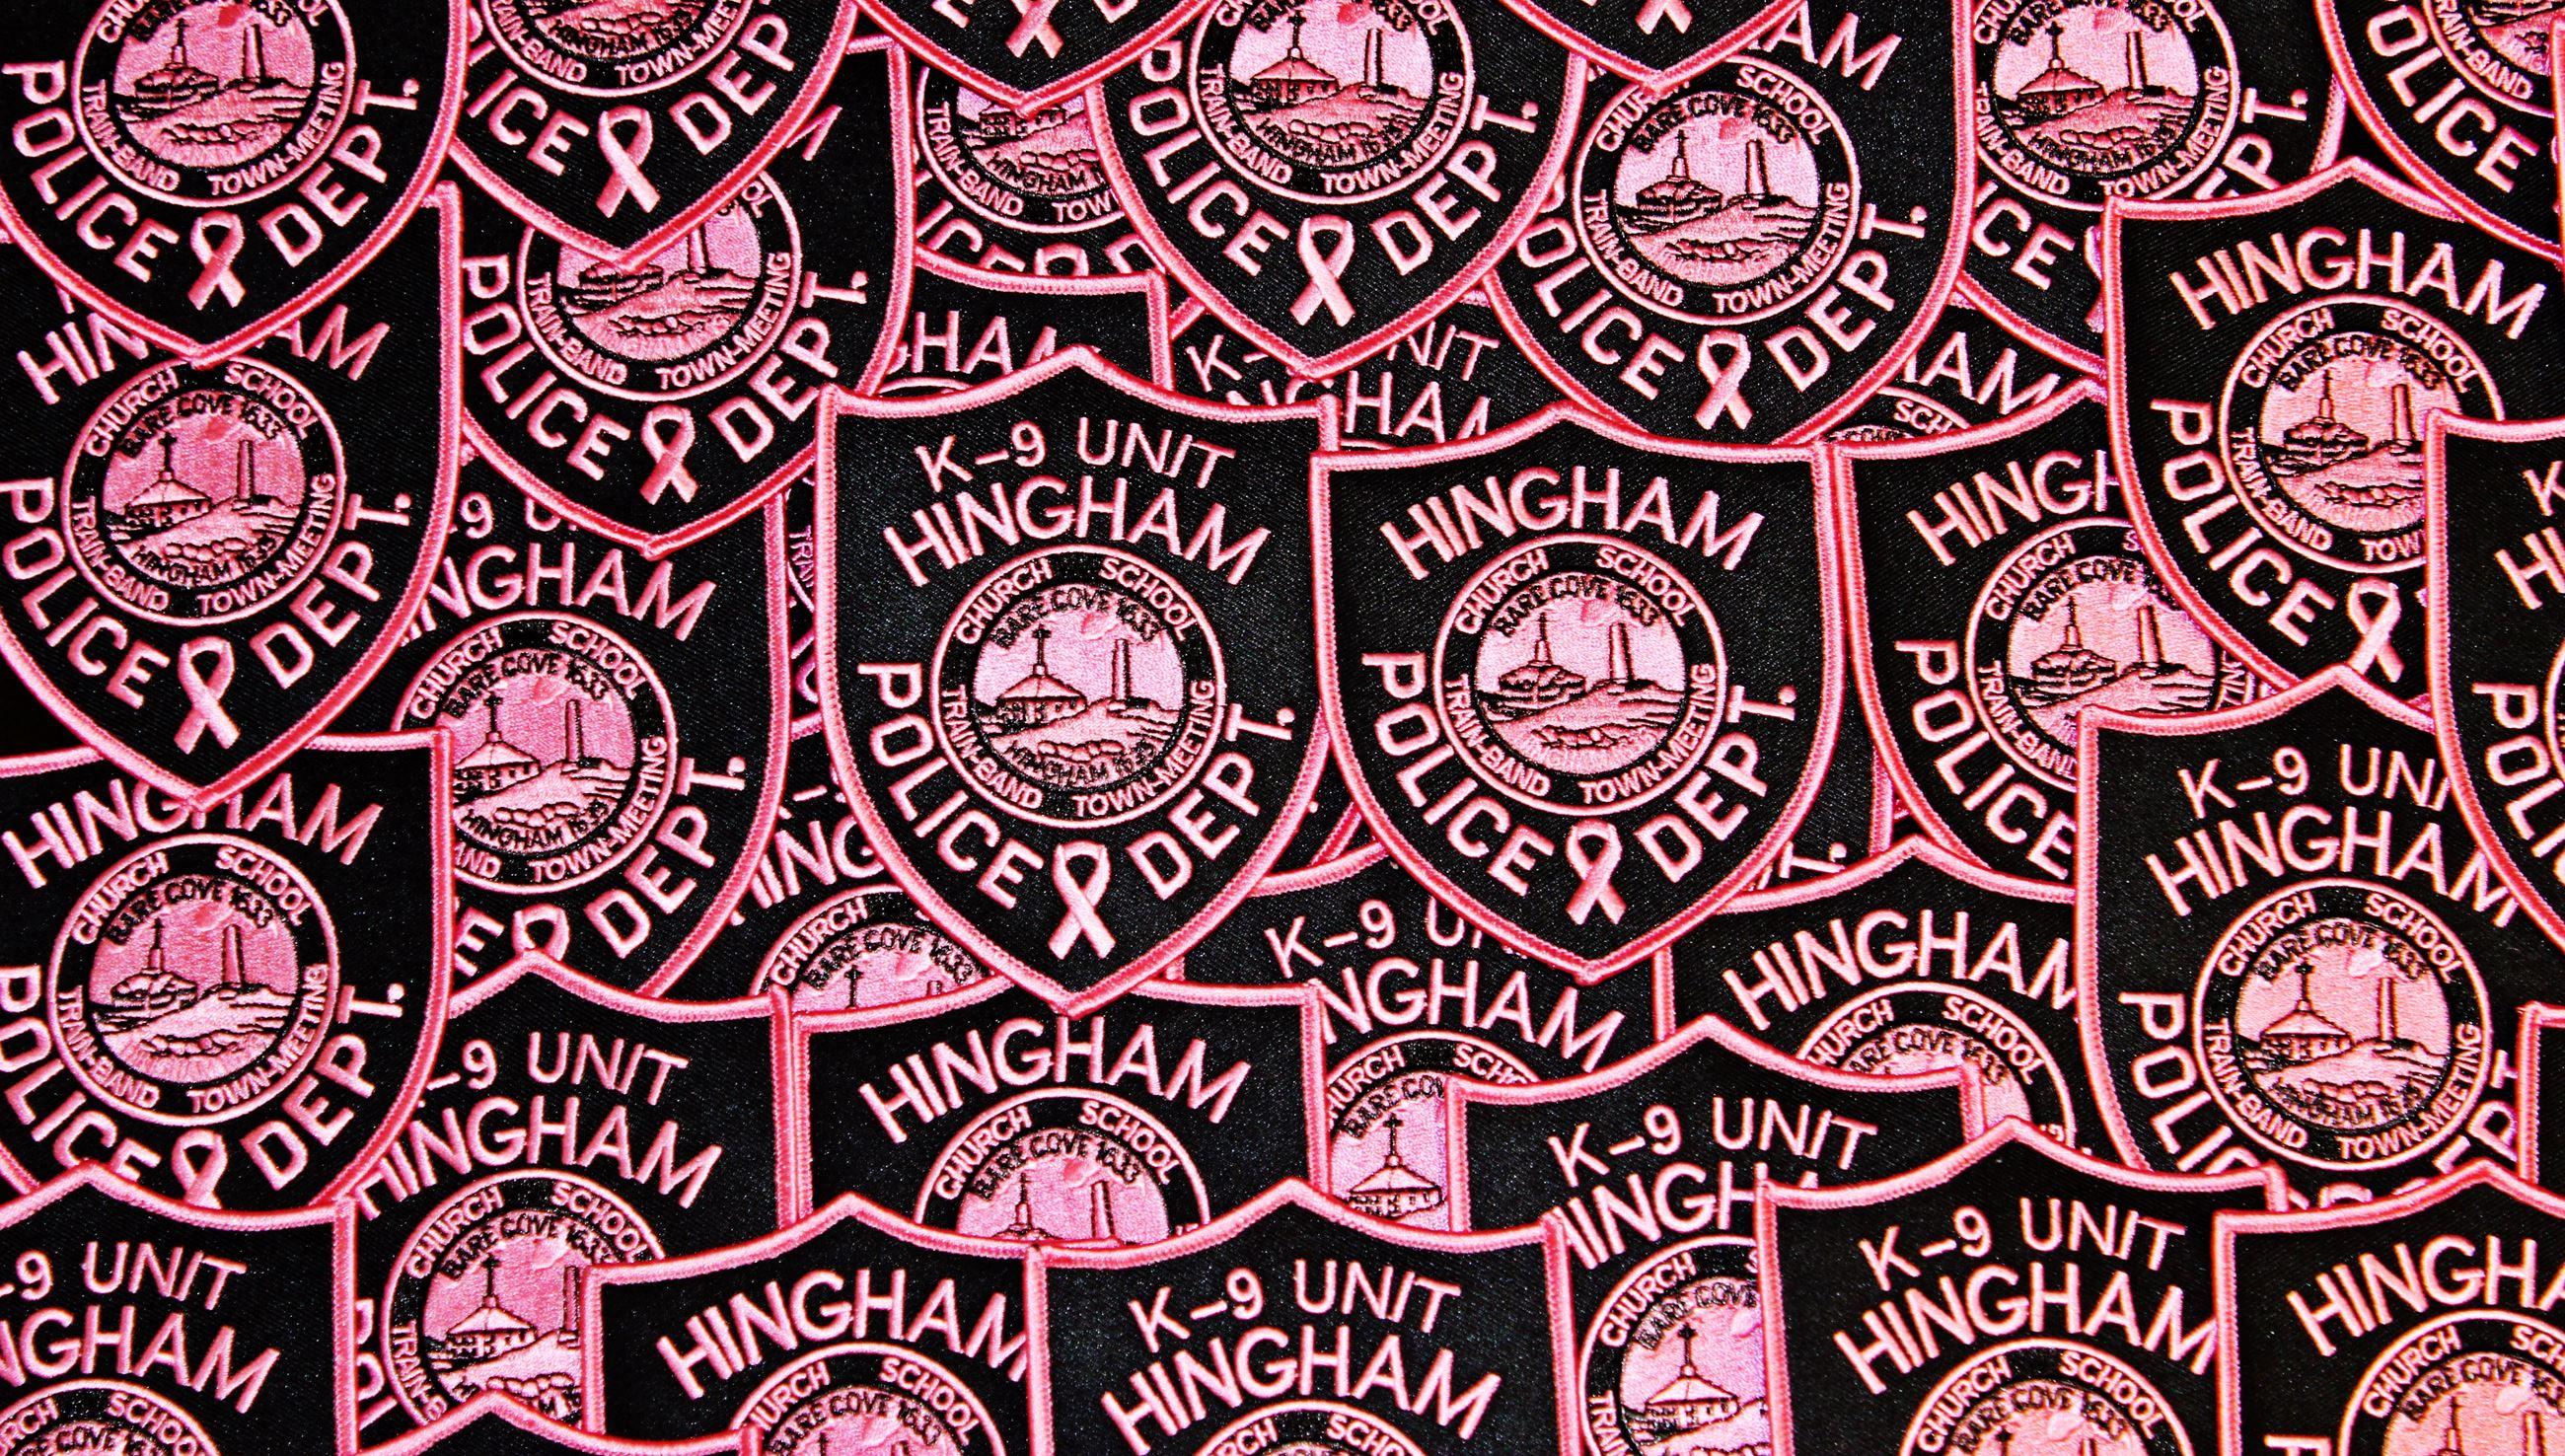 Hingham Police Pink Patches